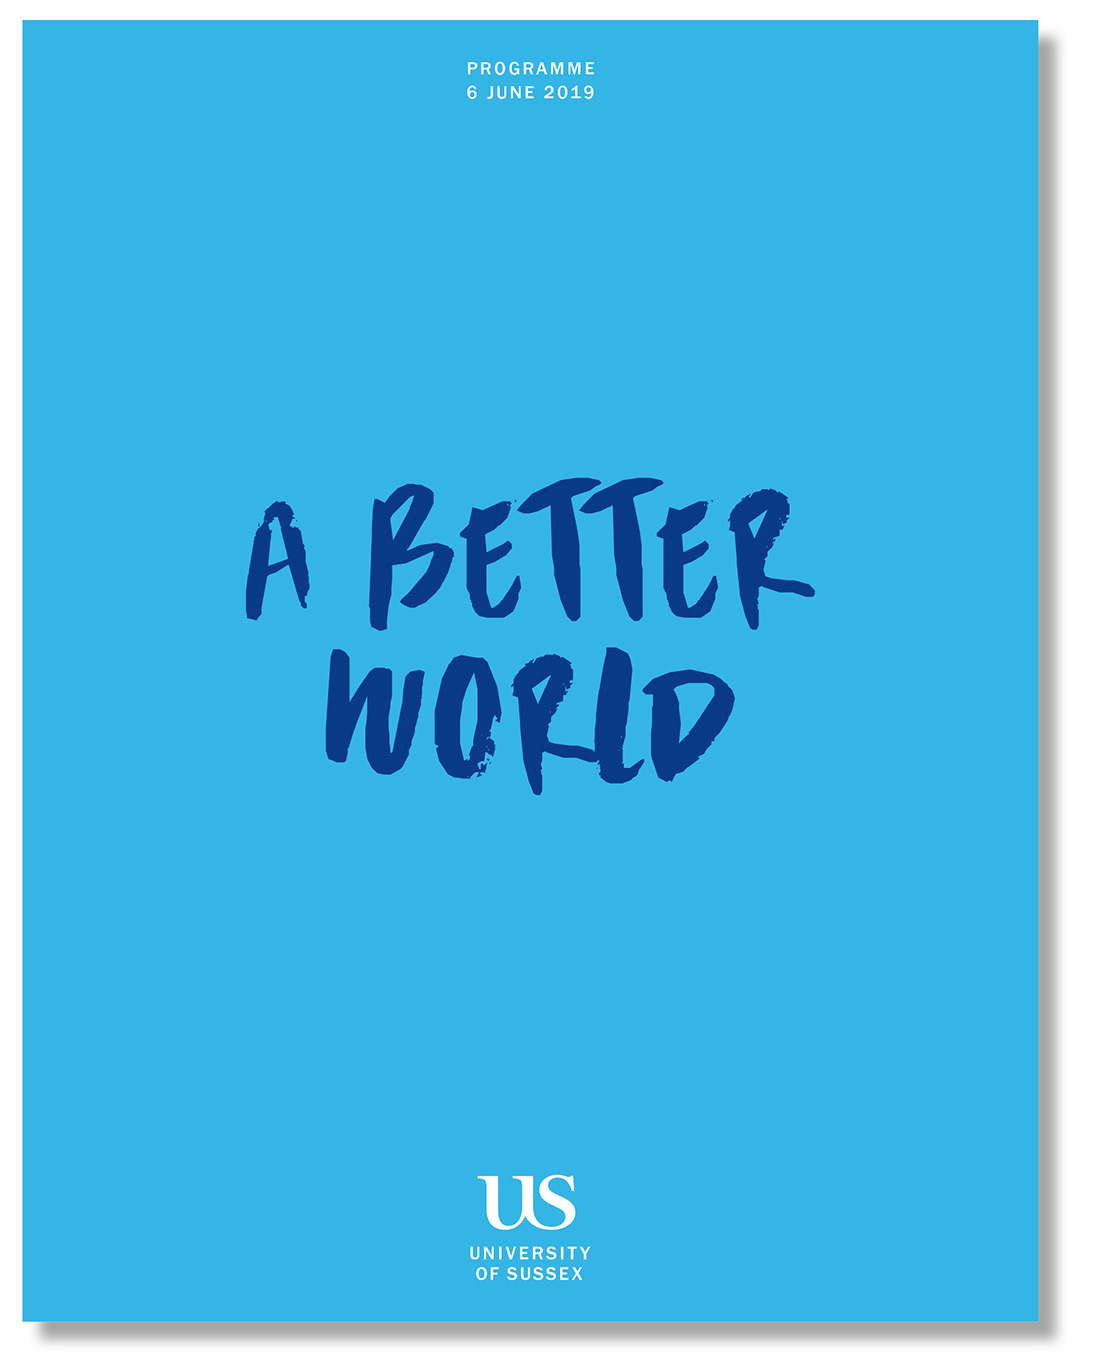 The University of Sussex - A Better World booklet designed by Irish Butcher